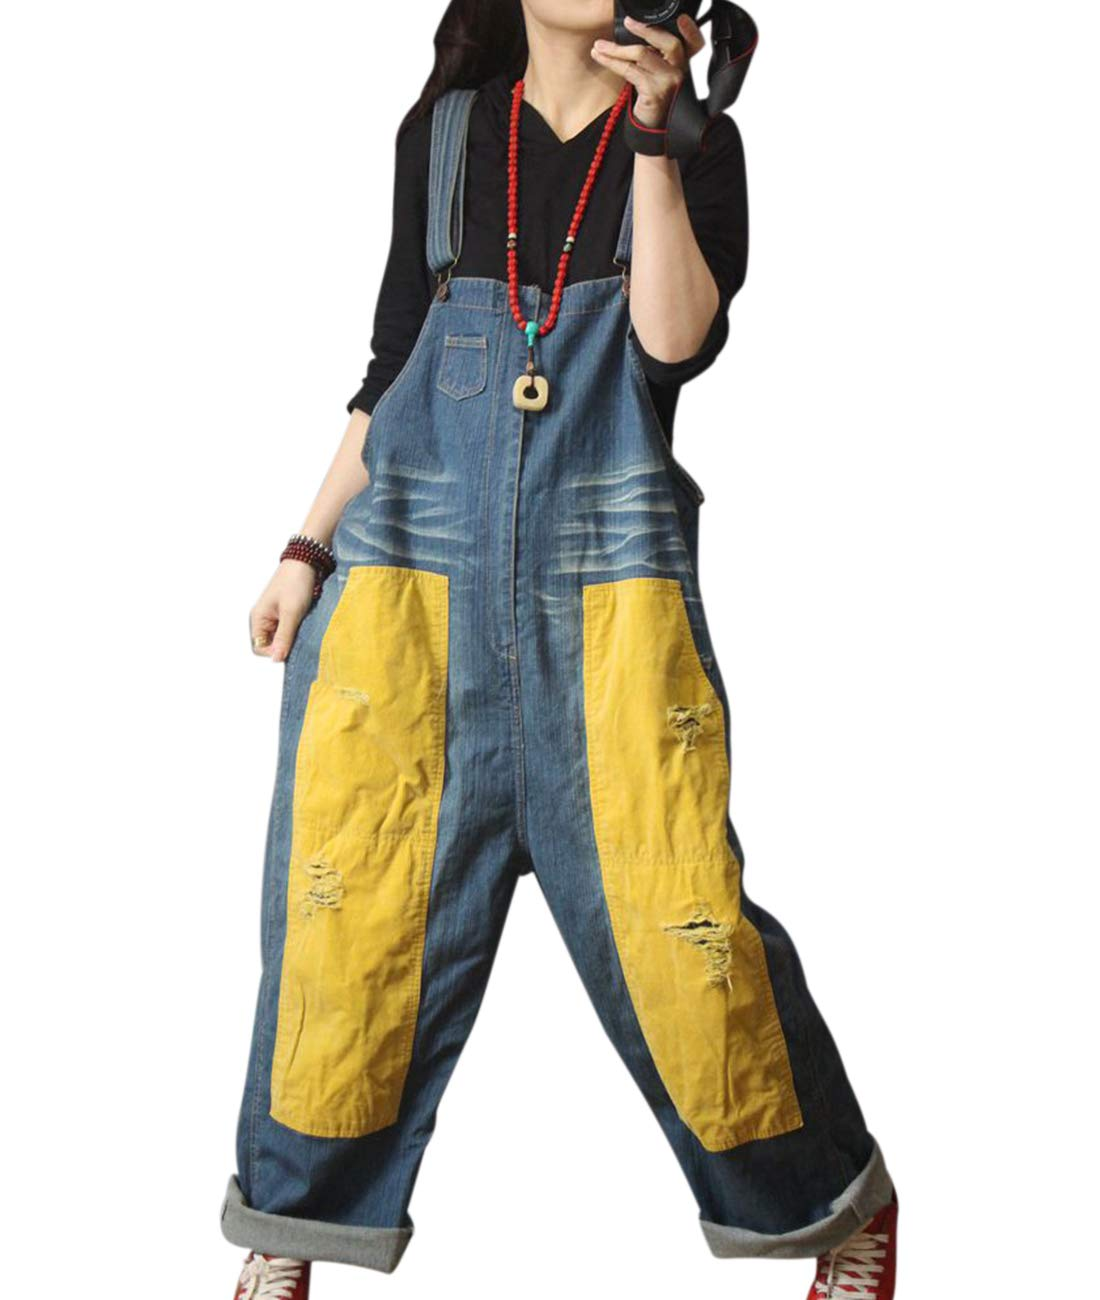 YESNO Women Casual Loose Denim Jumpsuits Rompers Contrast Color Patchwork & Back Pockets Distressed PJG